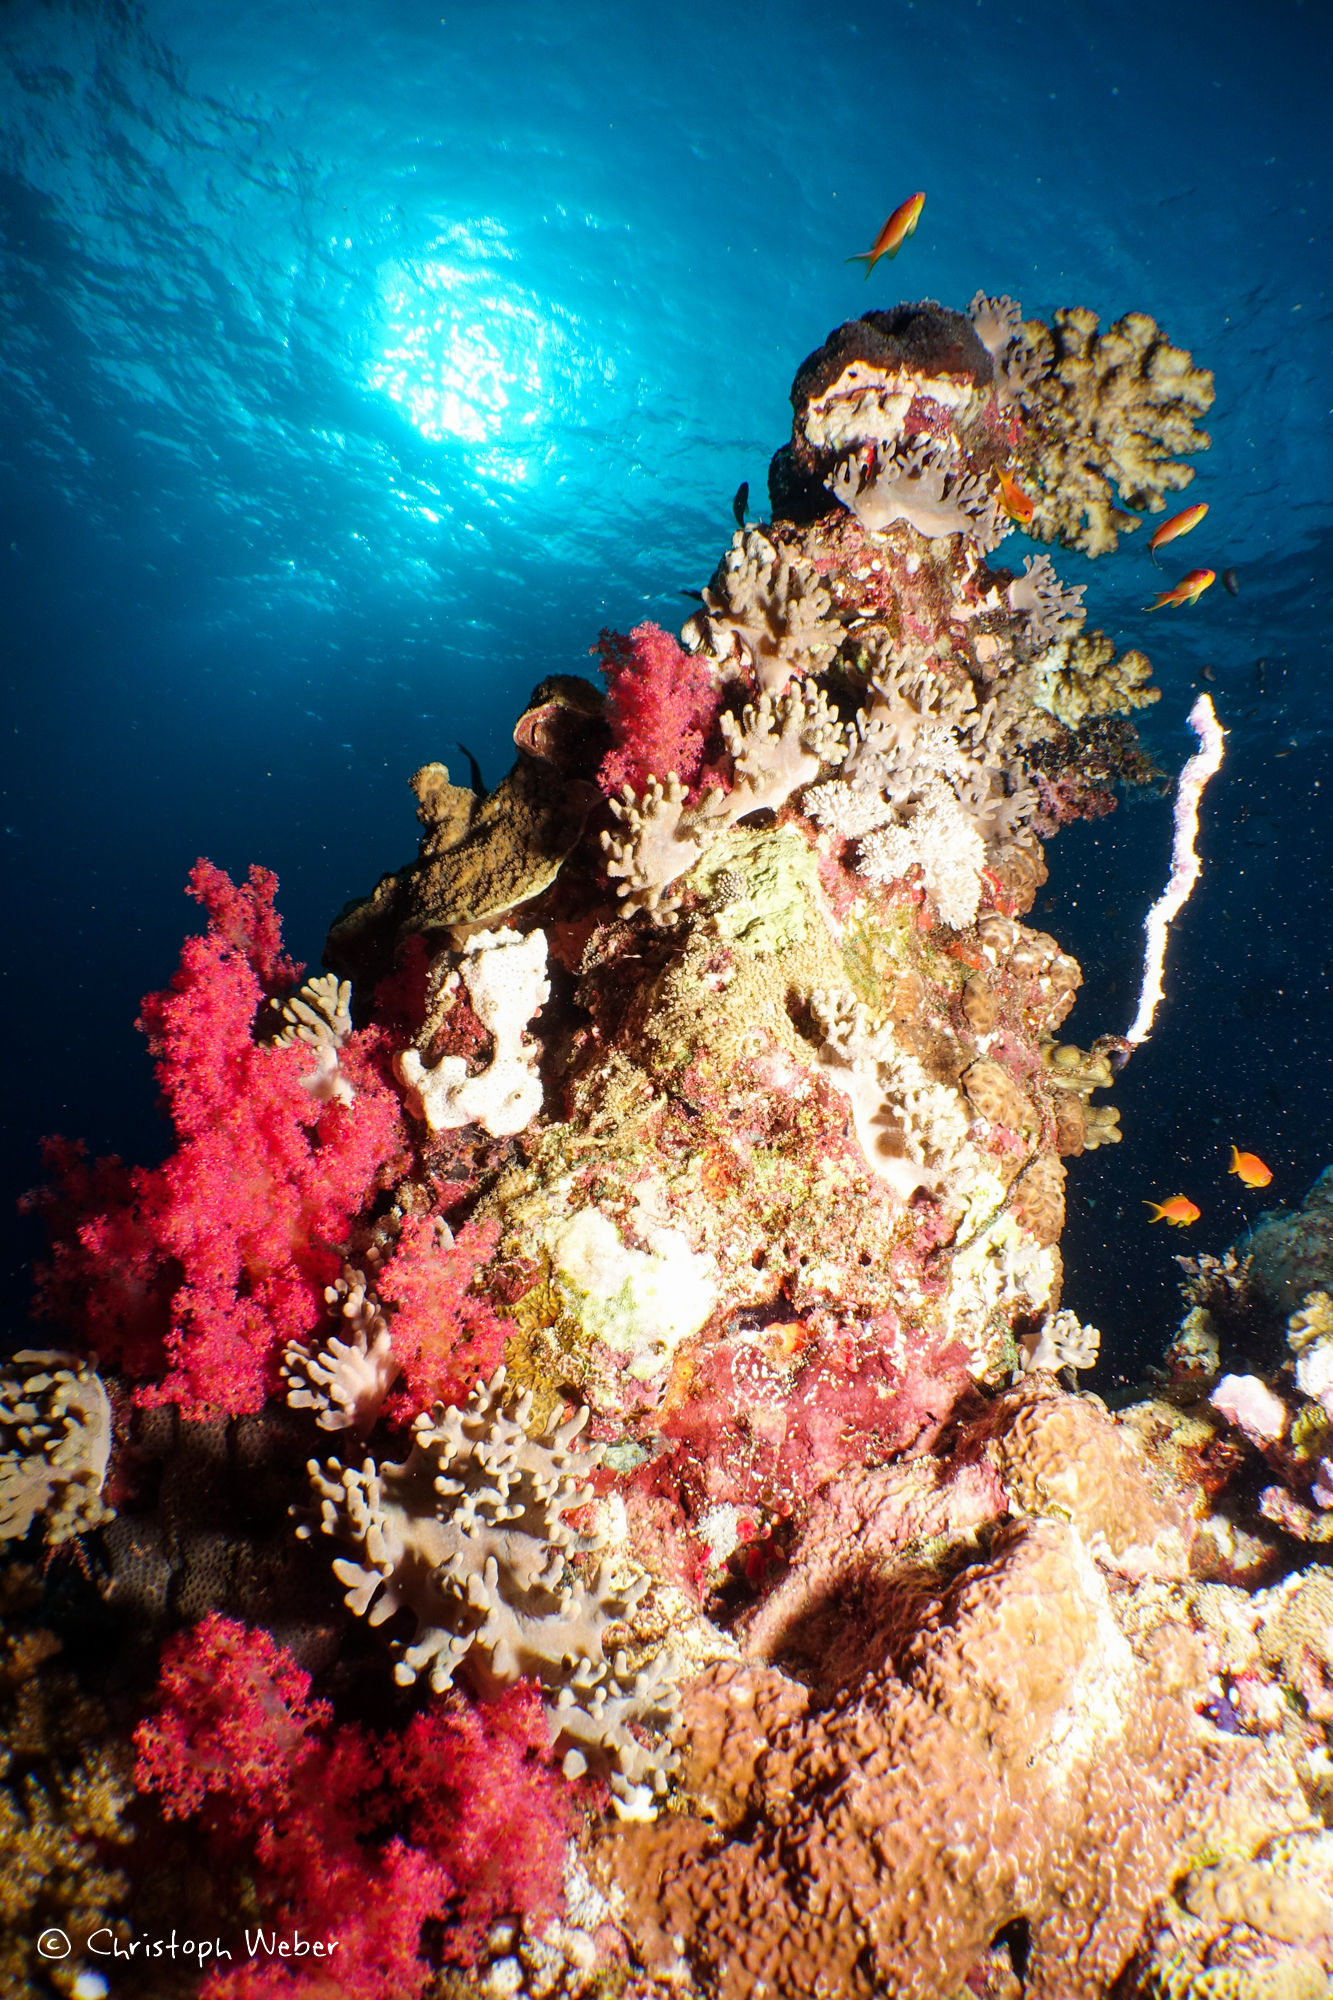 Red and Blue - Underwater landscape